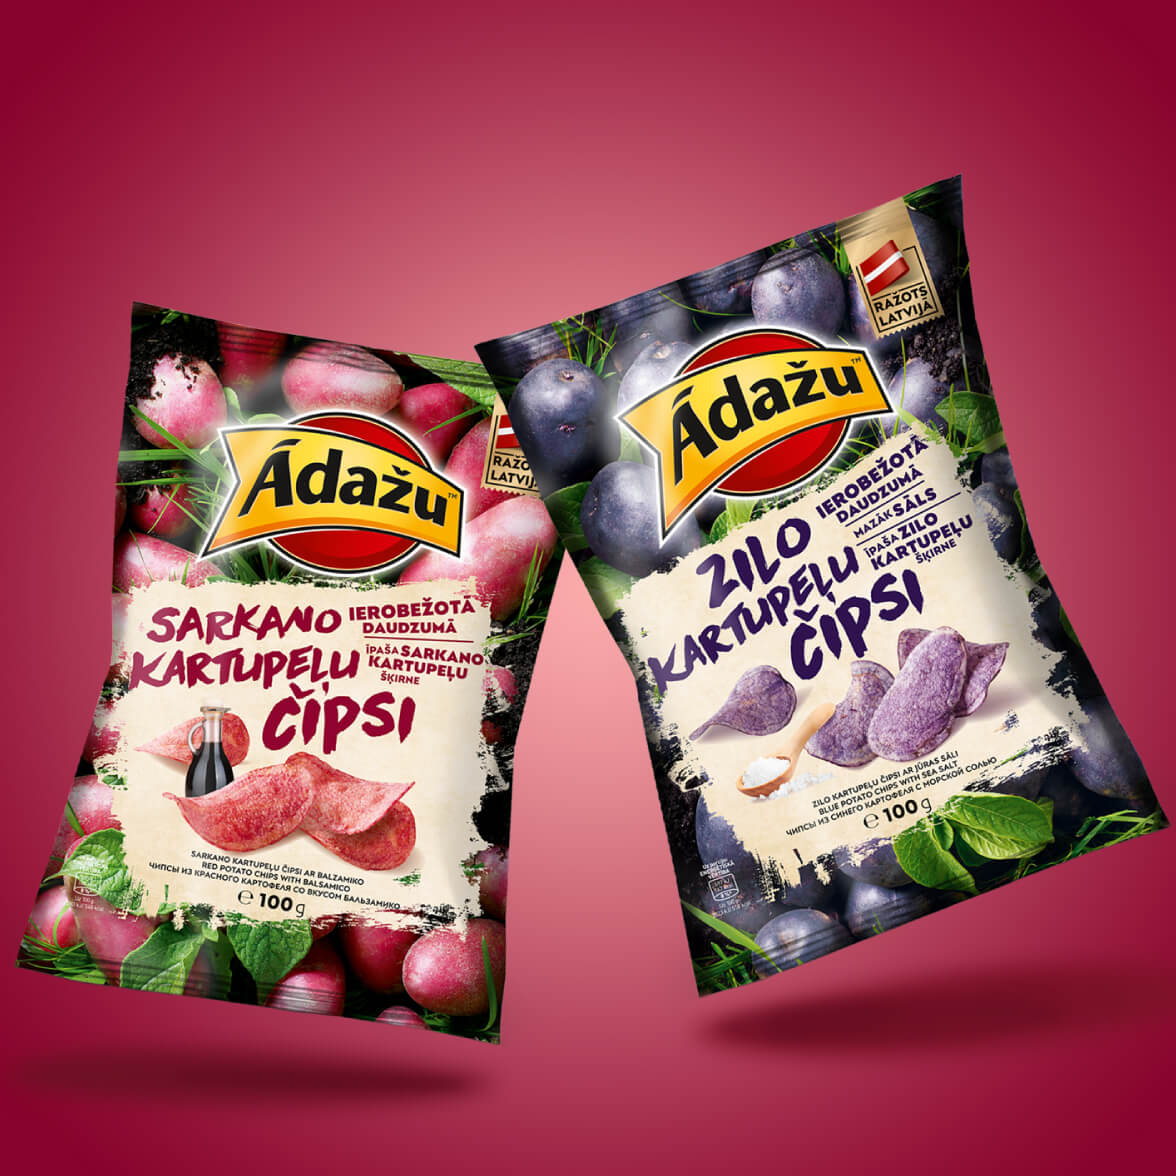 Adazu Blue and Red Potato Chips - packaging design